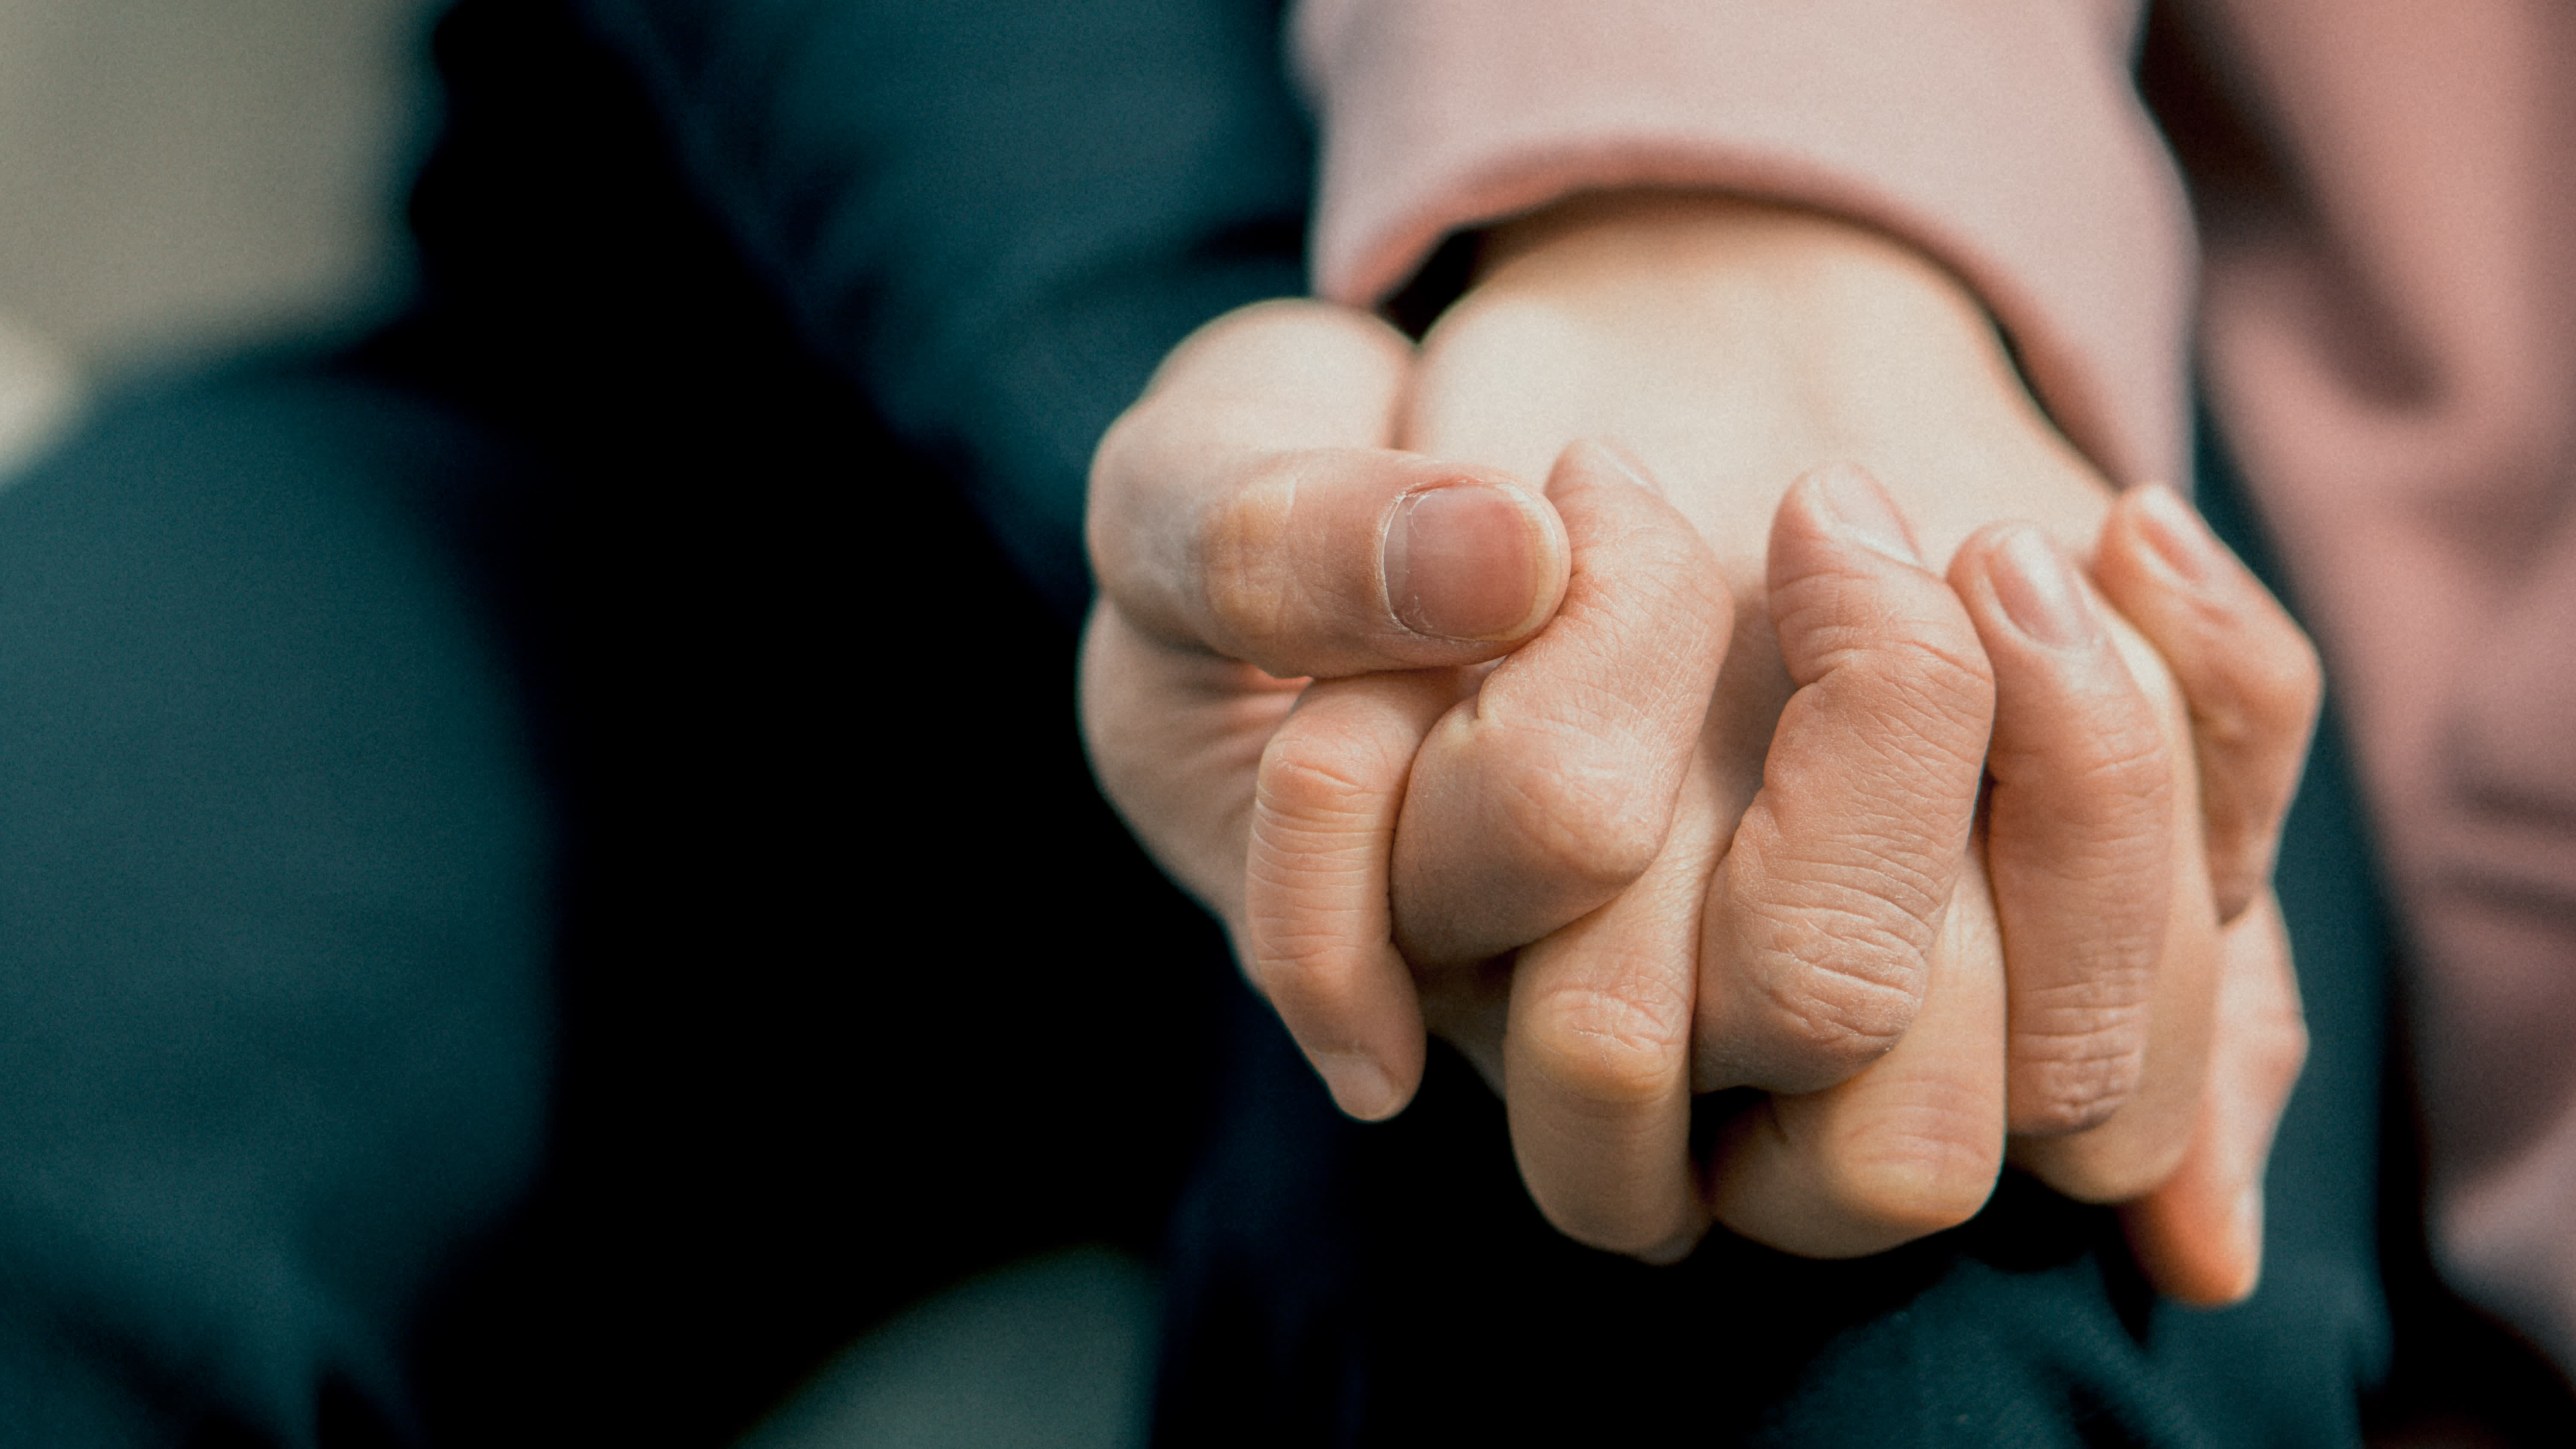 What to consider when advising potentially vulnerable clients